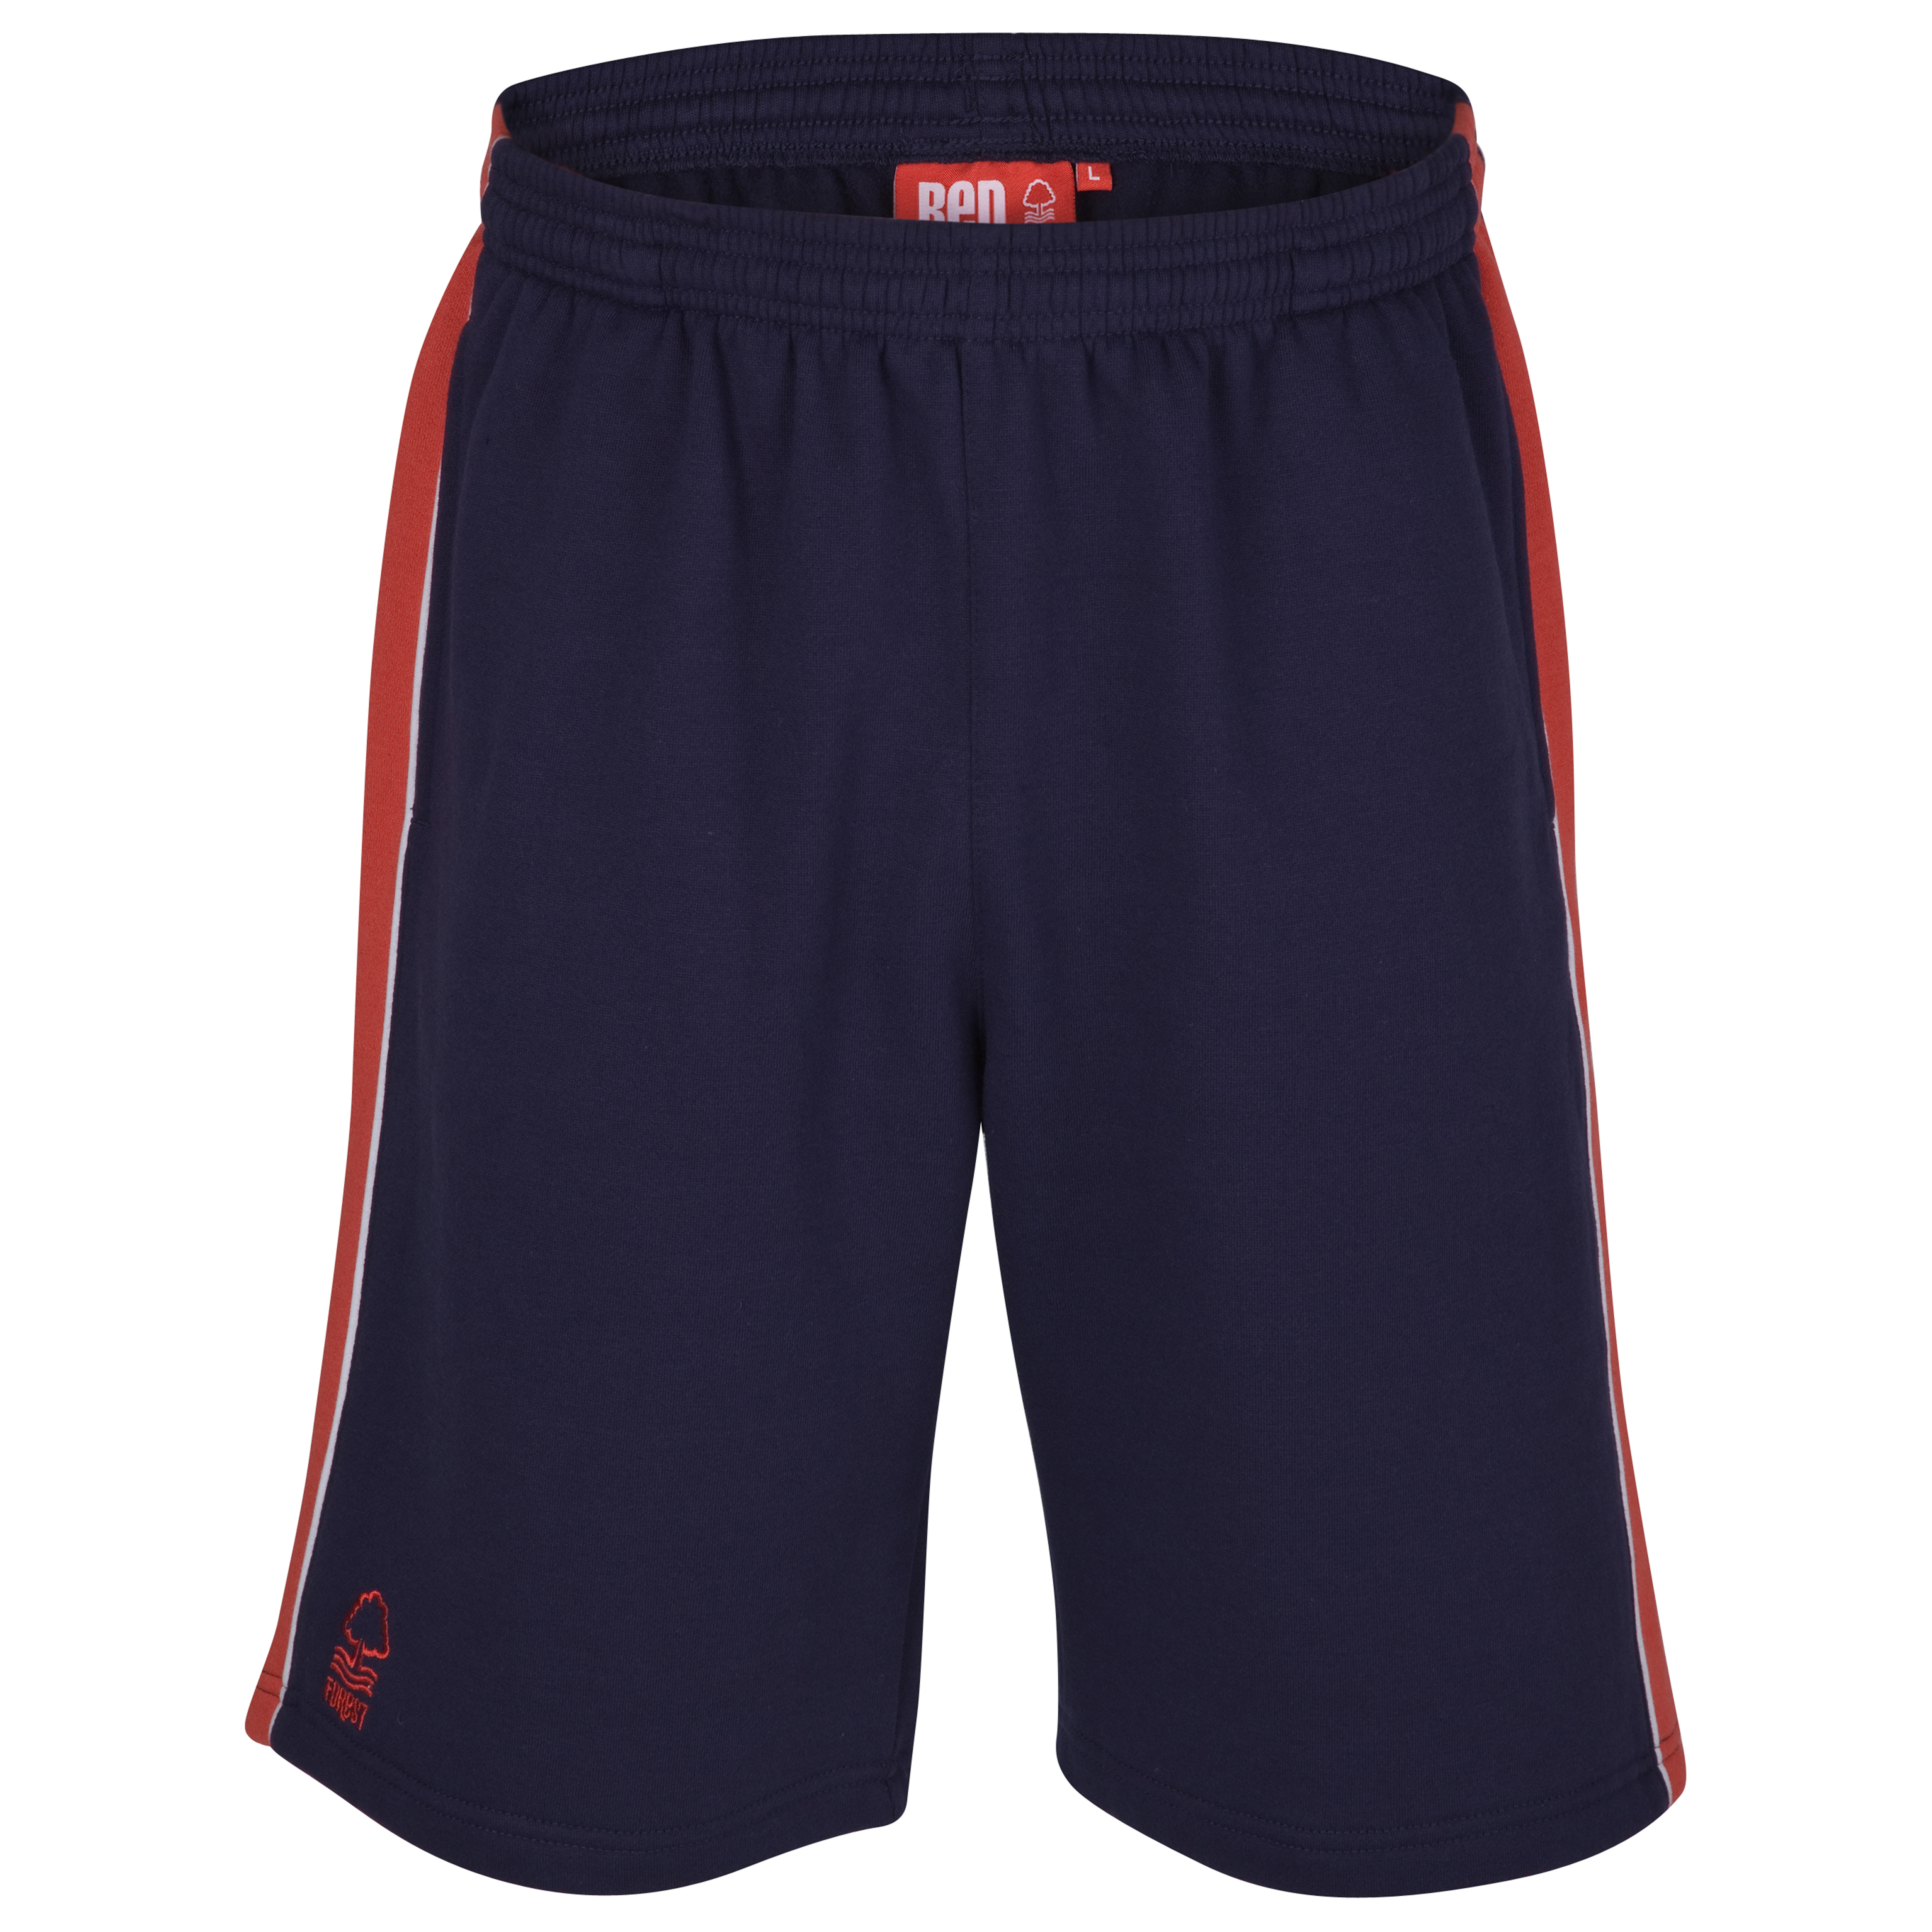 Nottingham Forest Essential Pebble Short- Navy/Red - Infant Boys